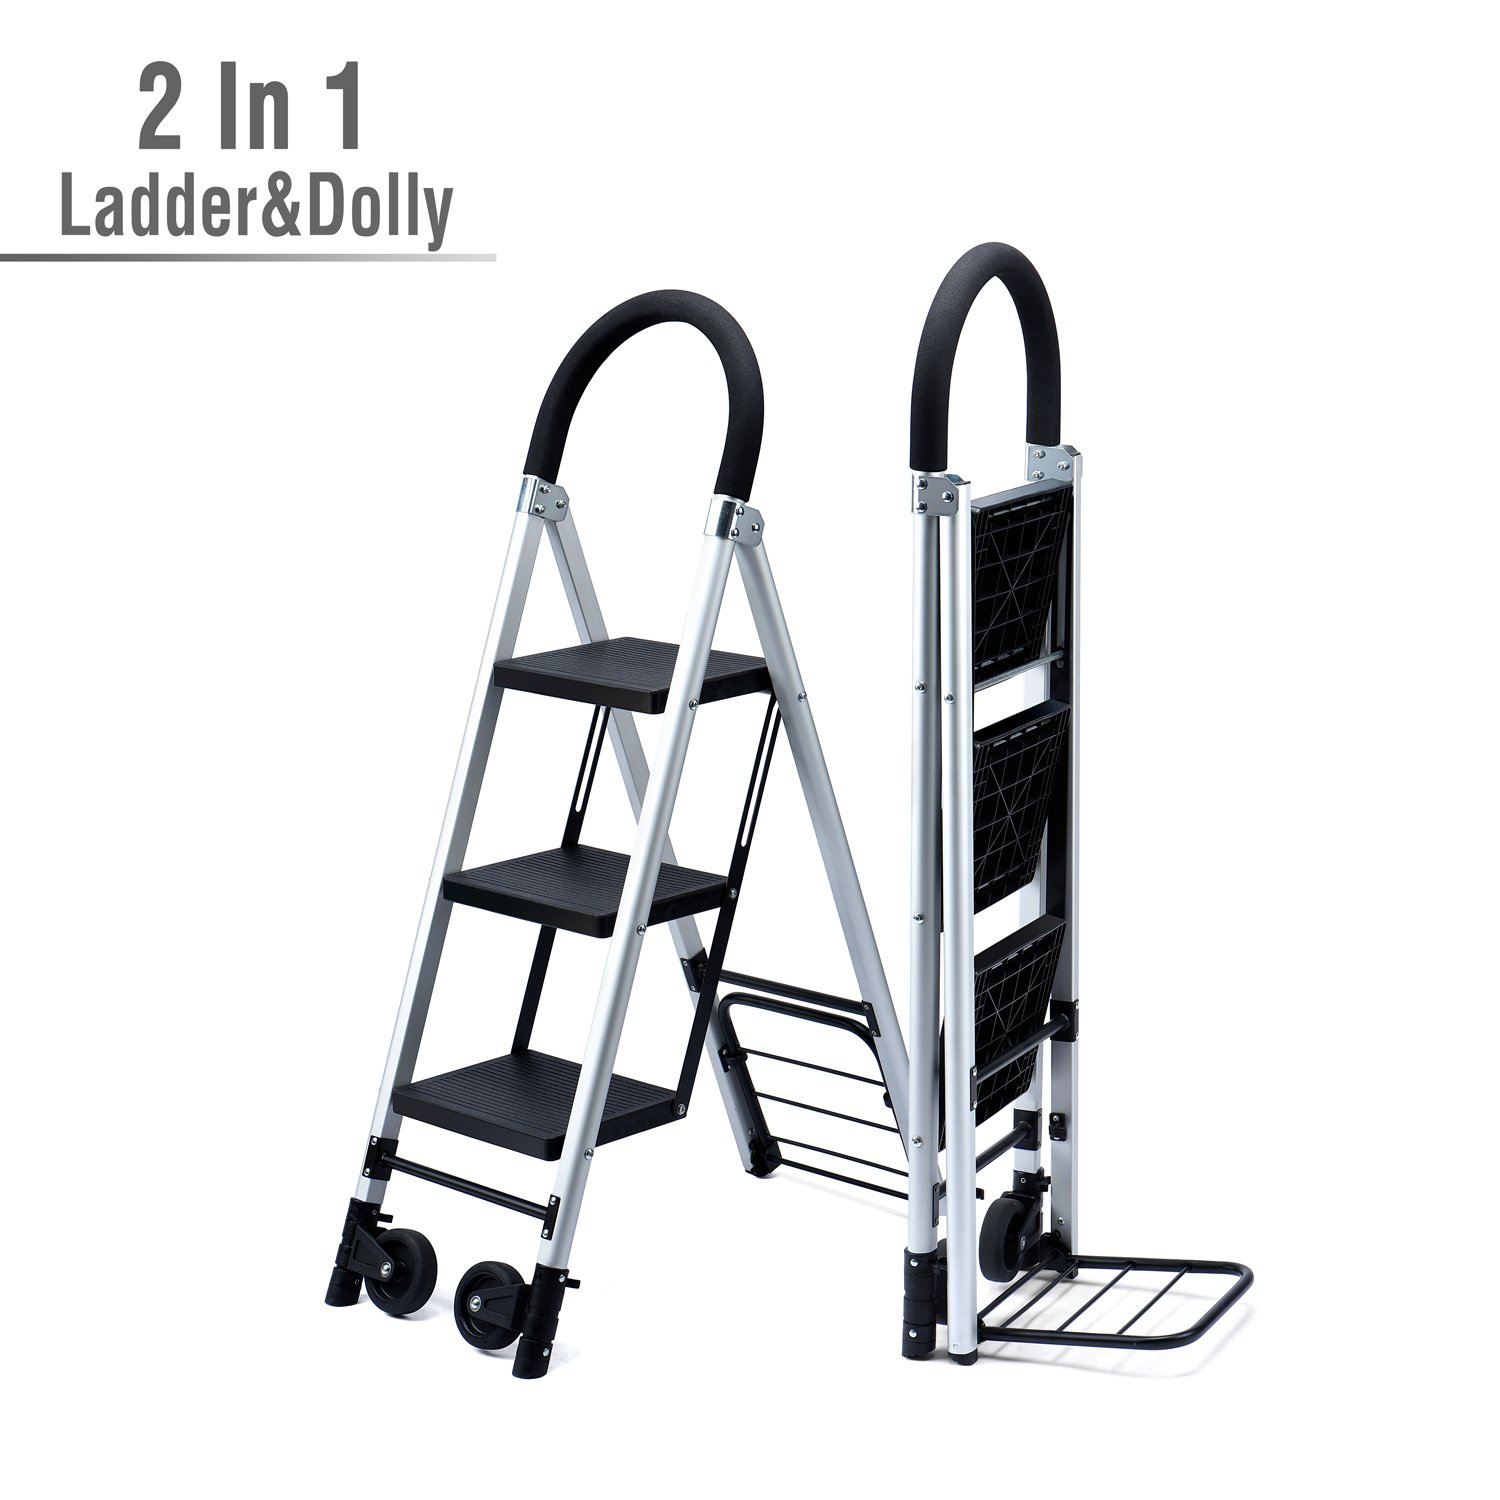 Delxo 2 in 1 Convertible 3 Step Ladder and Flodable Hand Truck with Soft Handgrip Anti-Slip Widen Pedals Multi-Use for Home Office Photographers Ladder 264lbs Space Saving 3-Feet